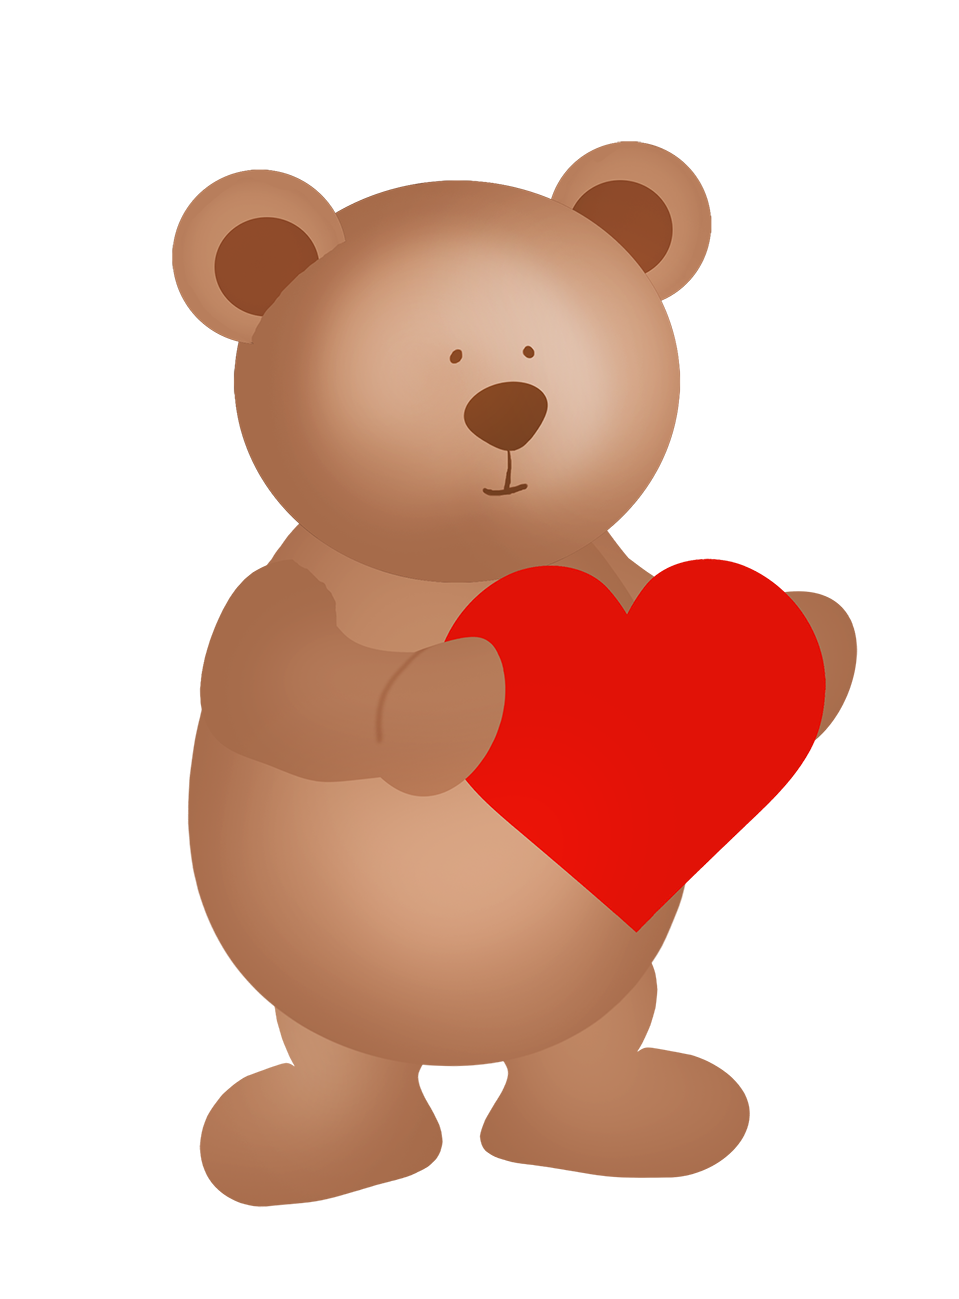 cute Valentine bear with red heart